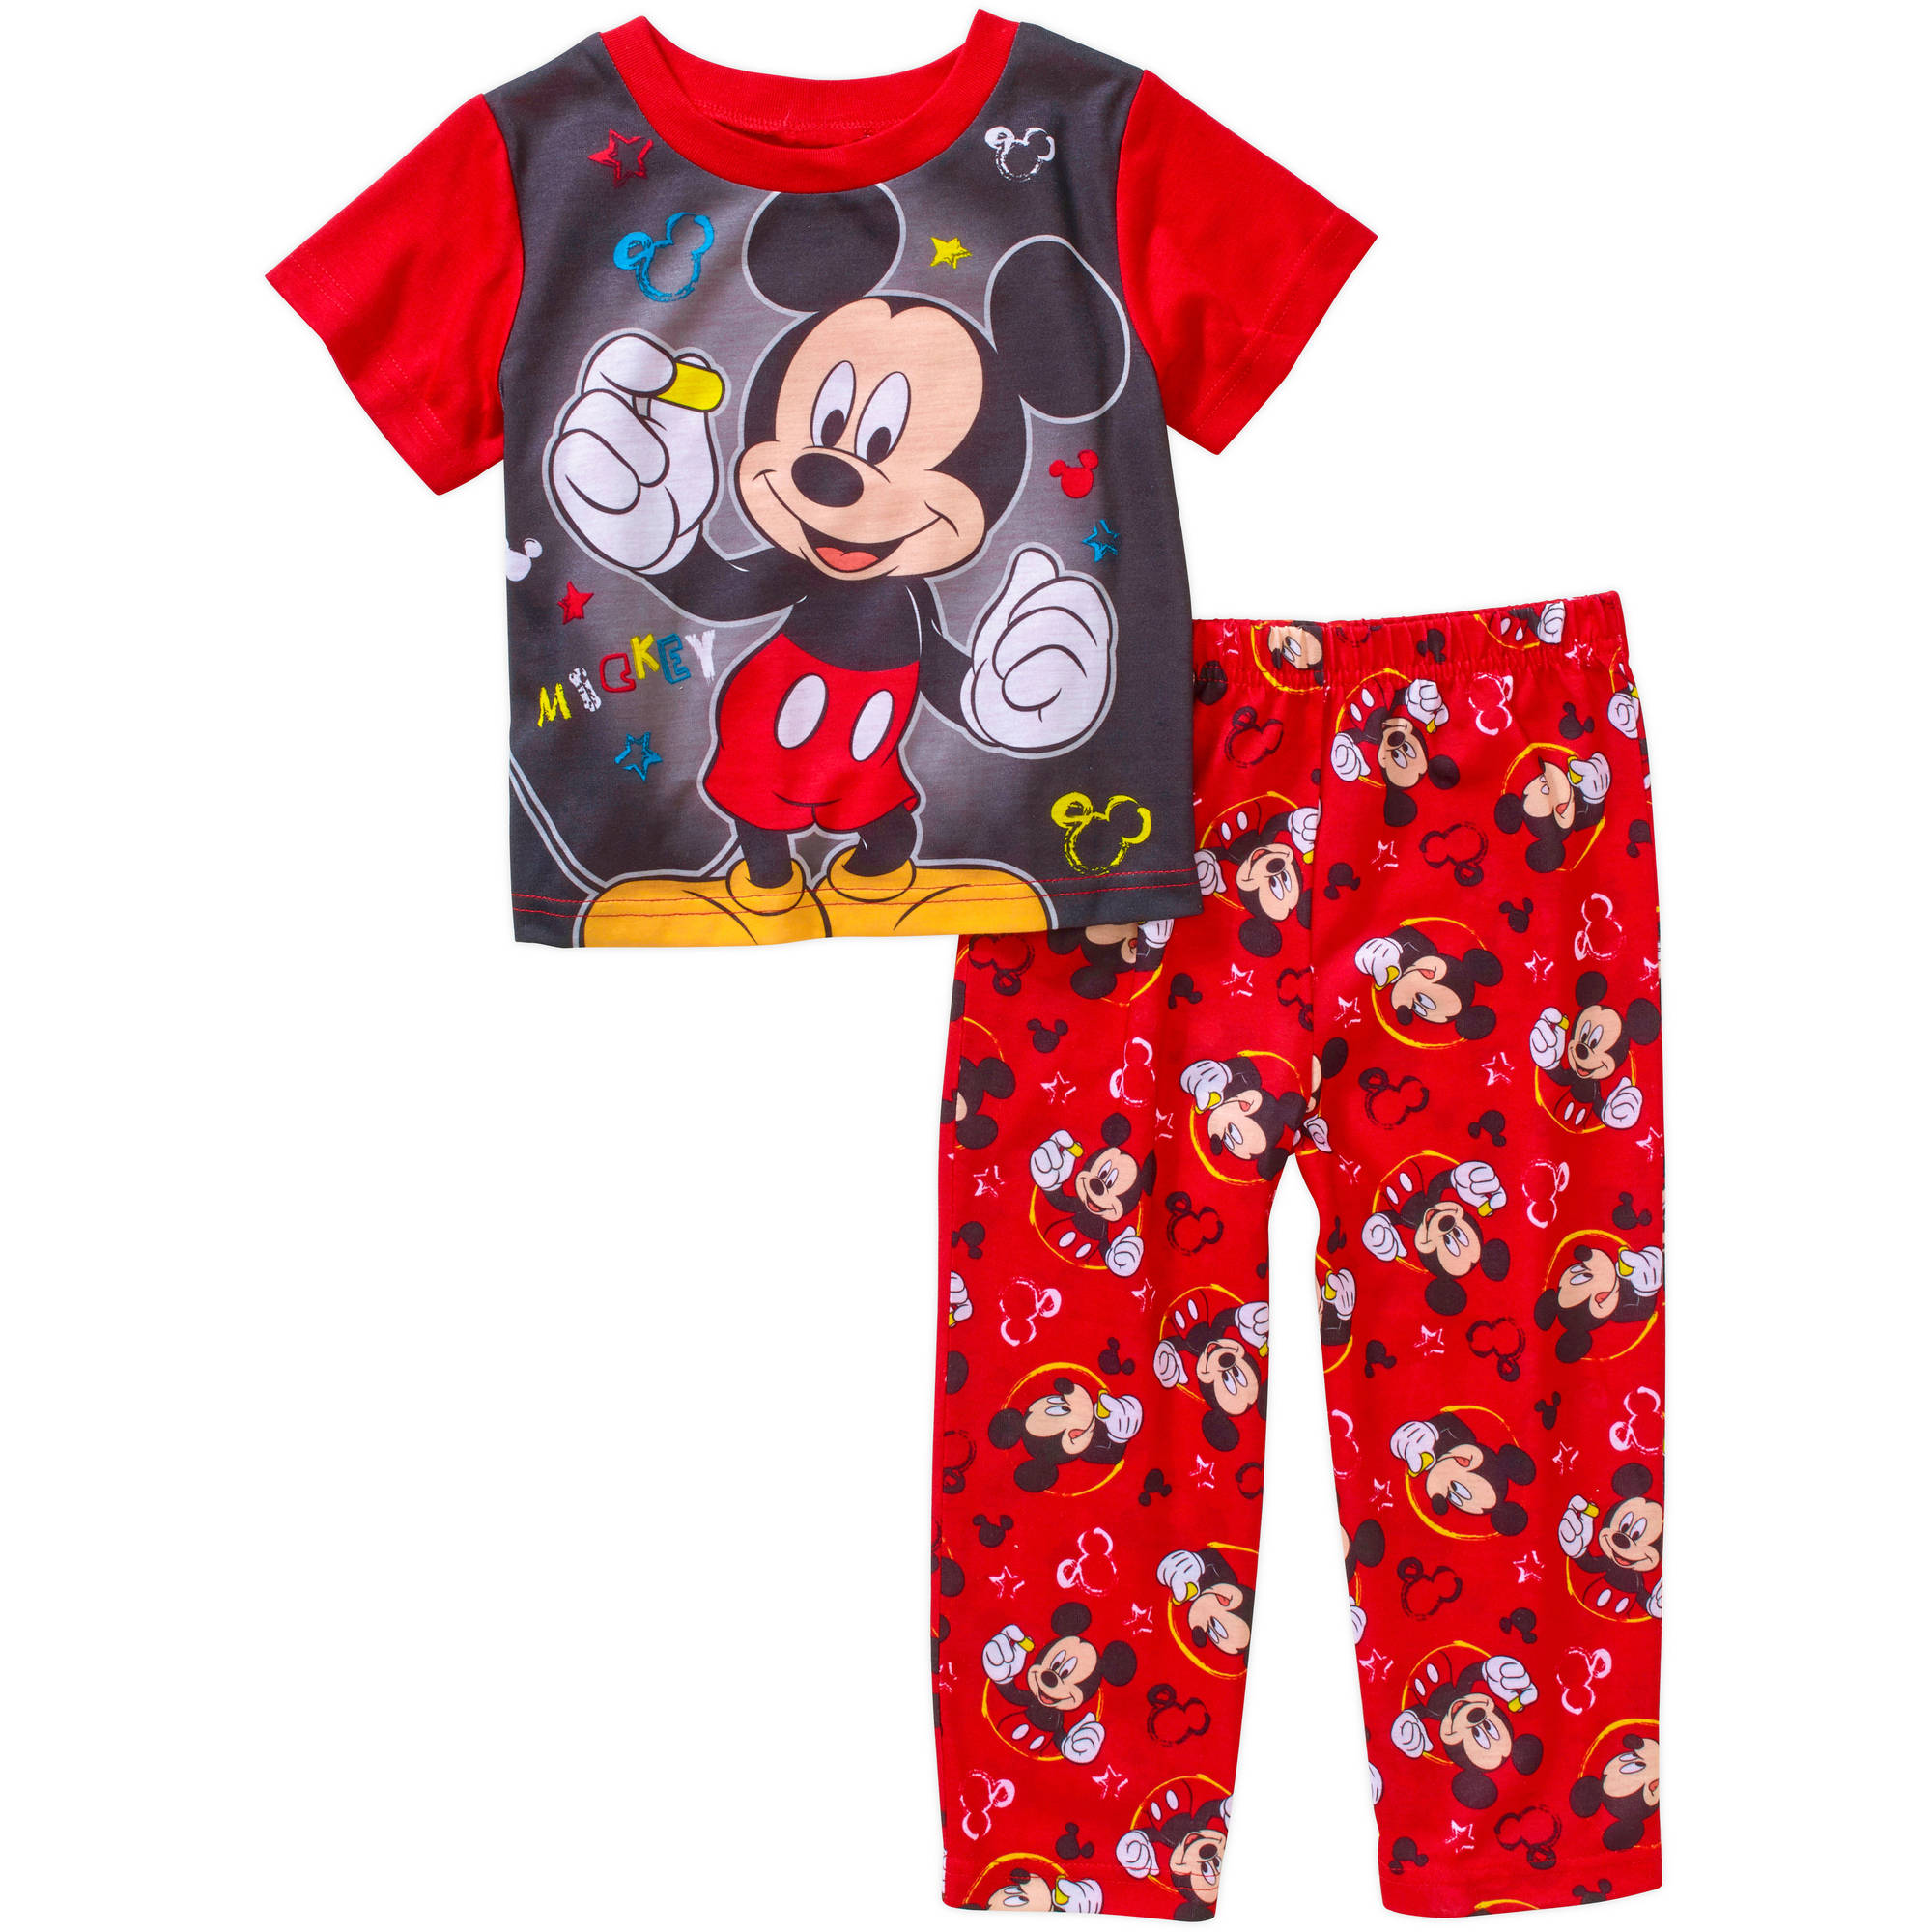 Shop for mickey mouse pajamas boys online at Target. Free shipping on purchases over $35 and save 5% every day with your Target REDcard.